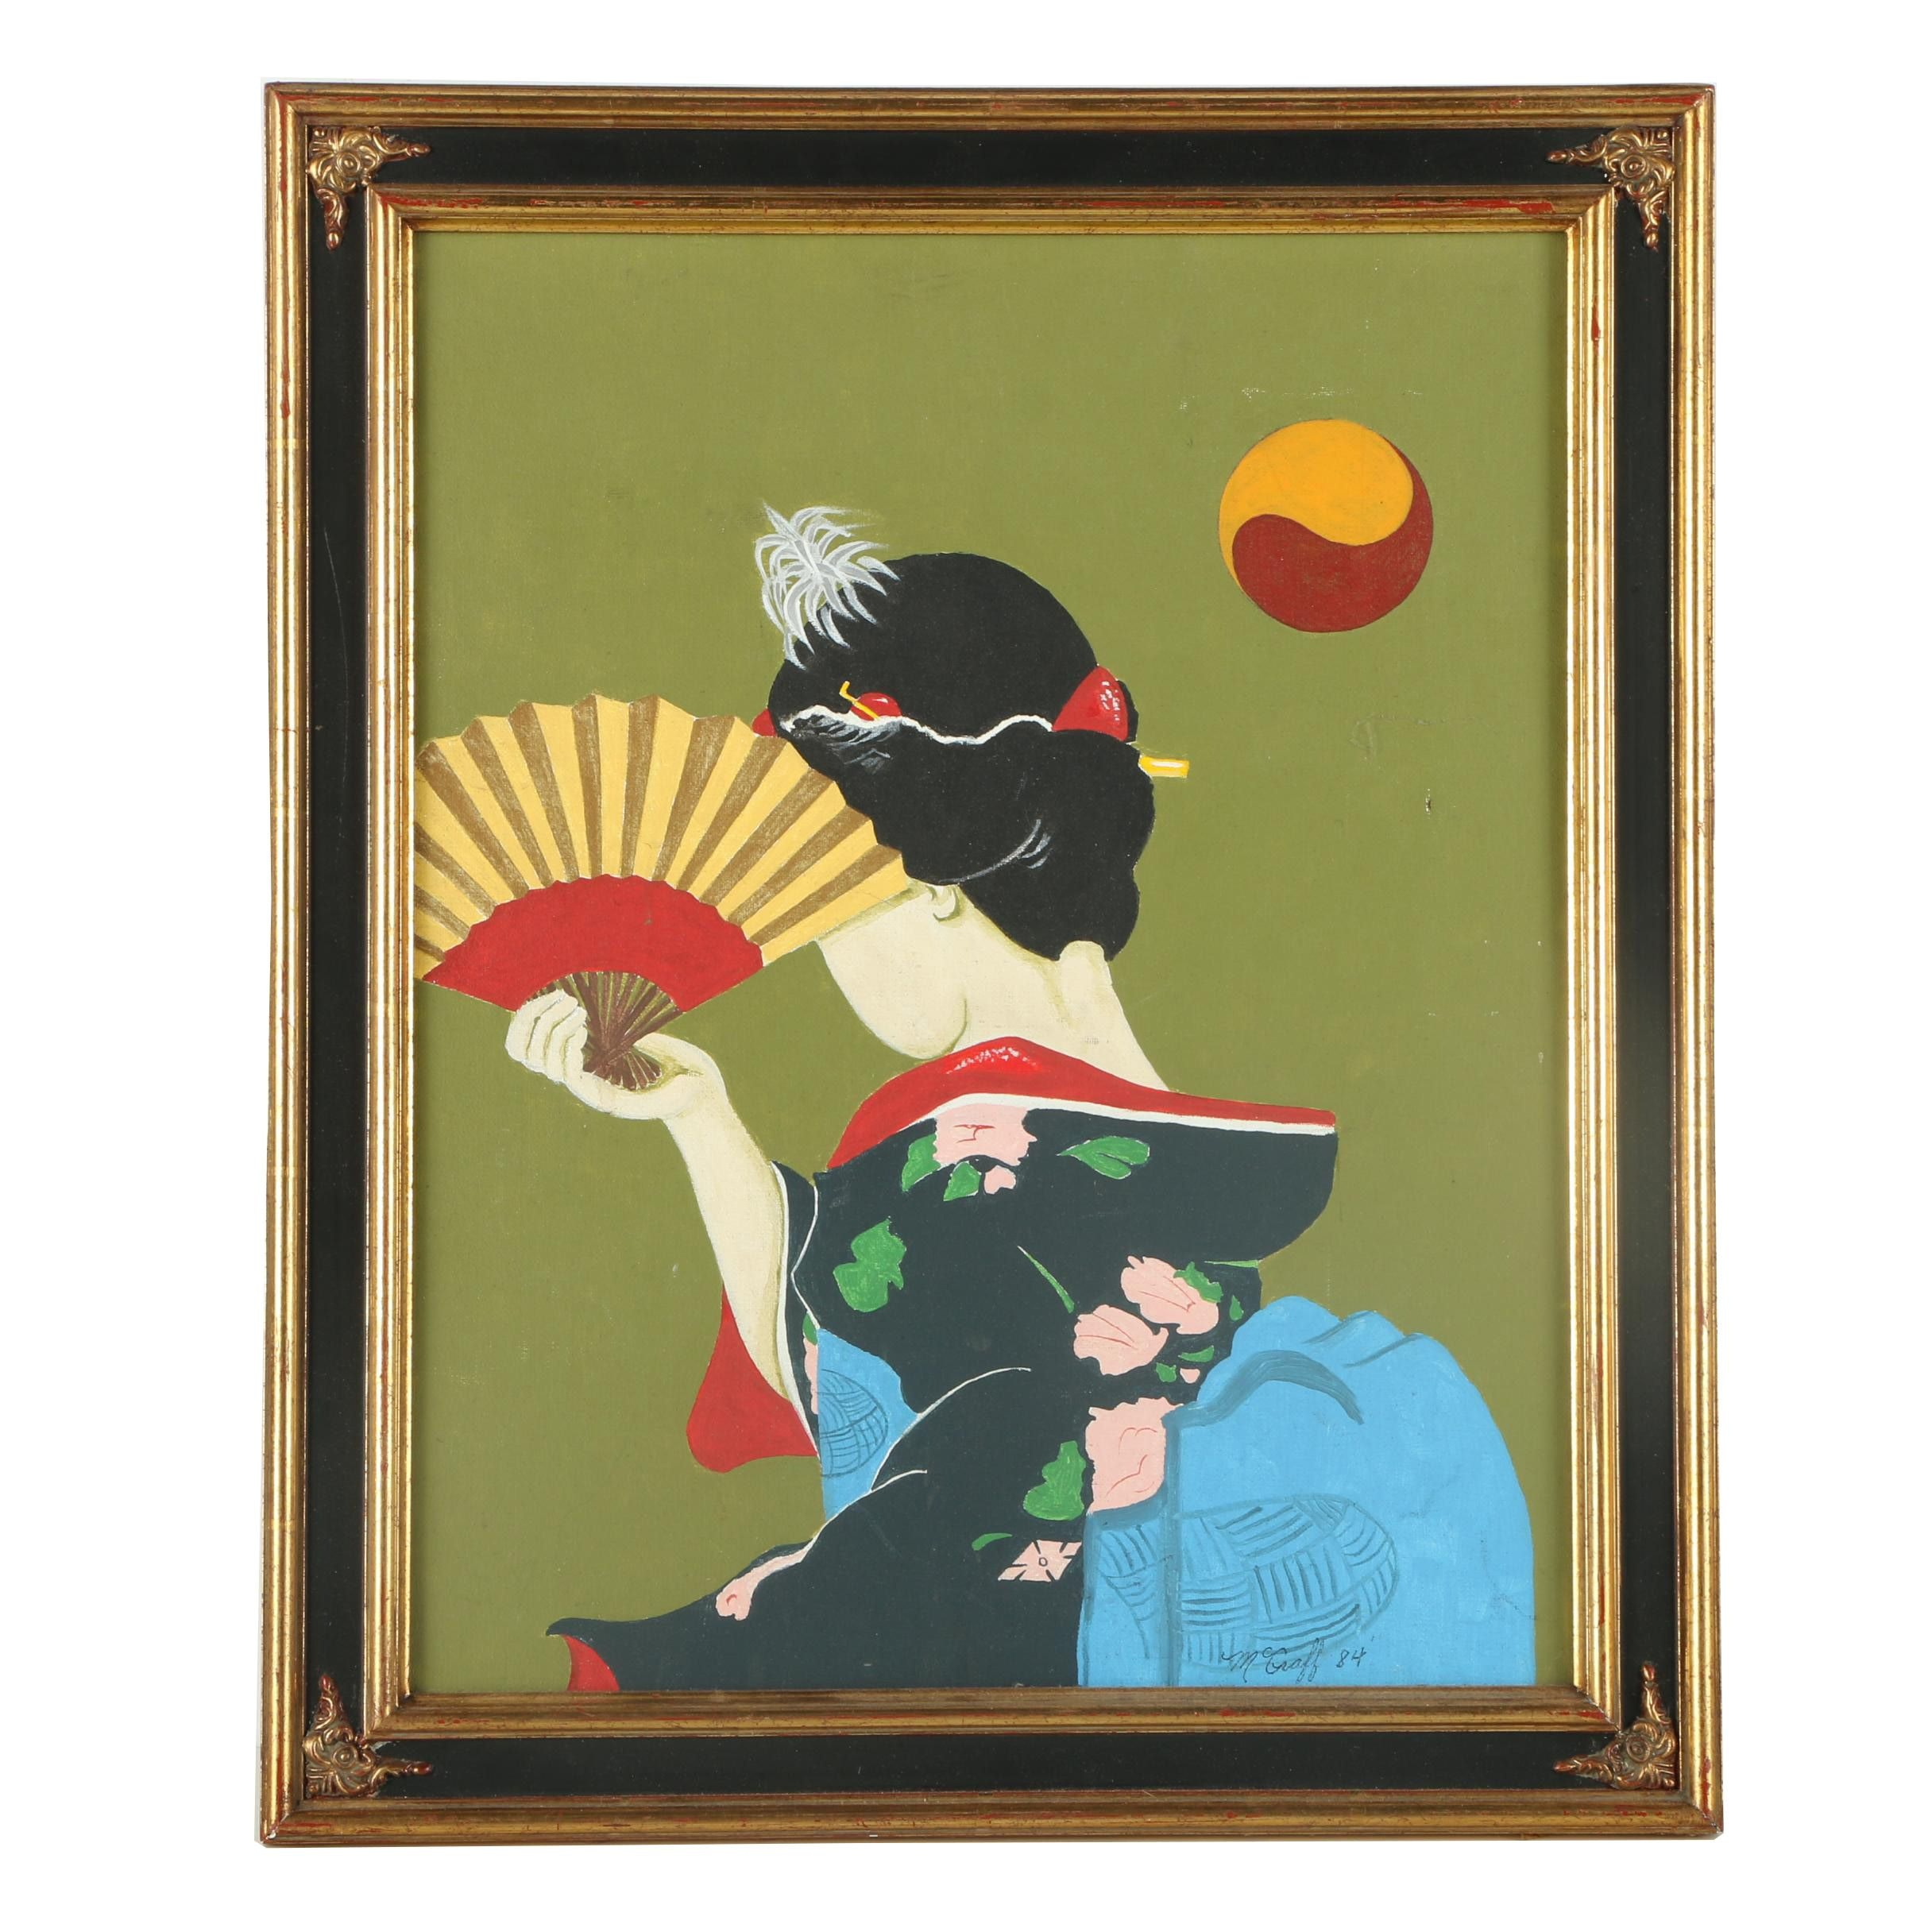 M. Graff Oil Painting on Canvas Board of East Asian Style Composition